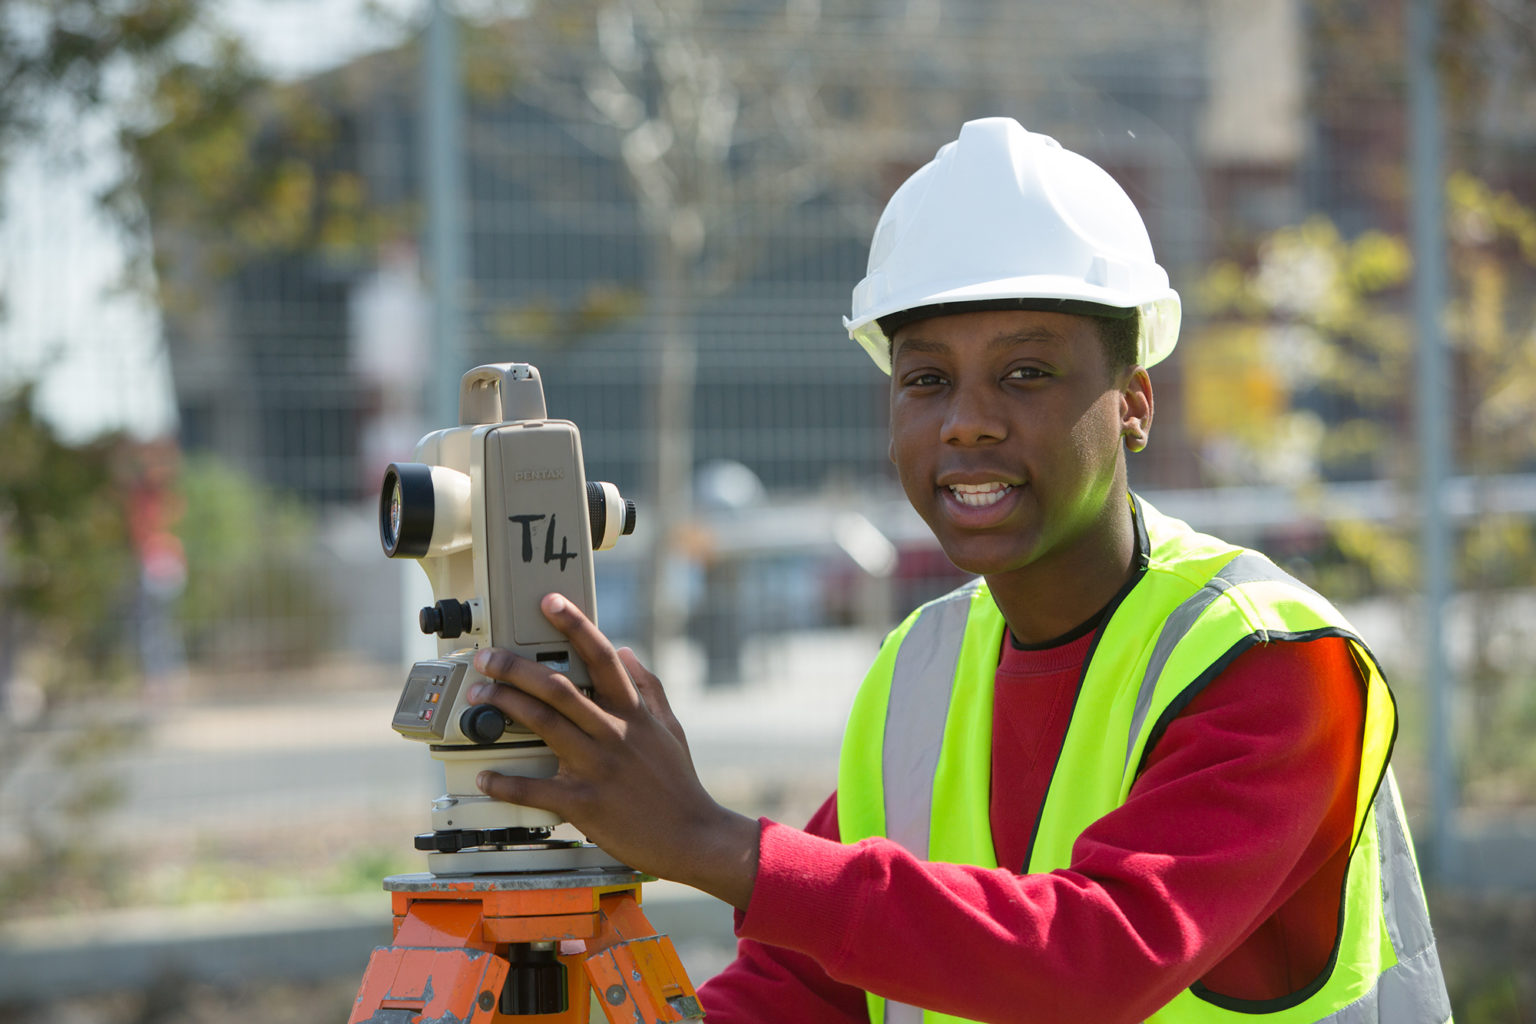 Digital Construction and Surveying with foundation year